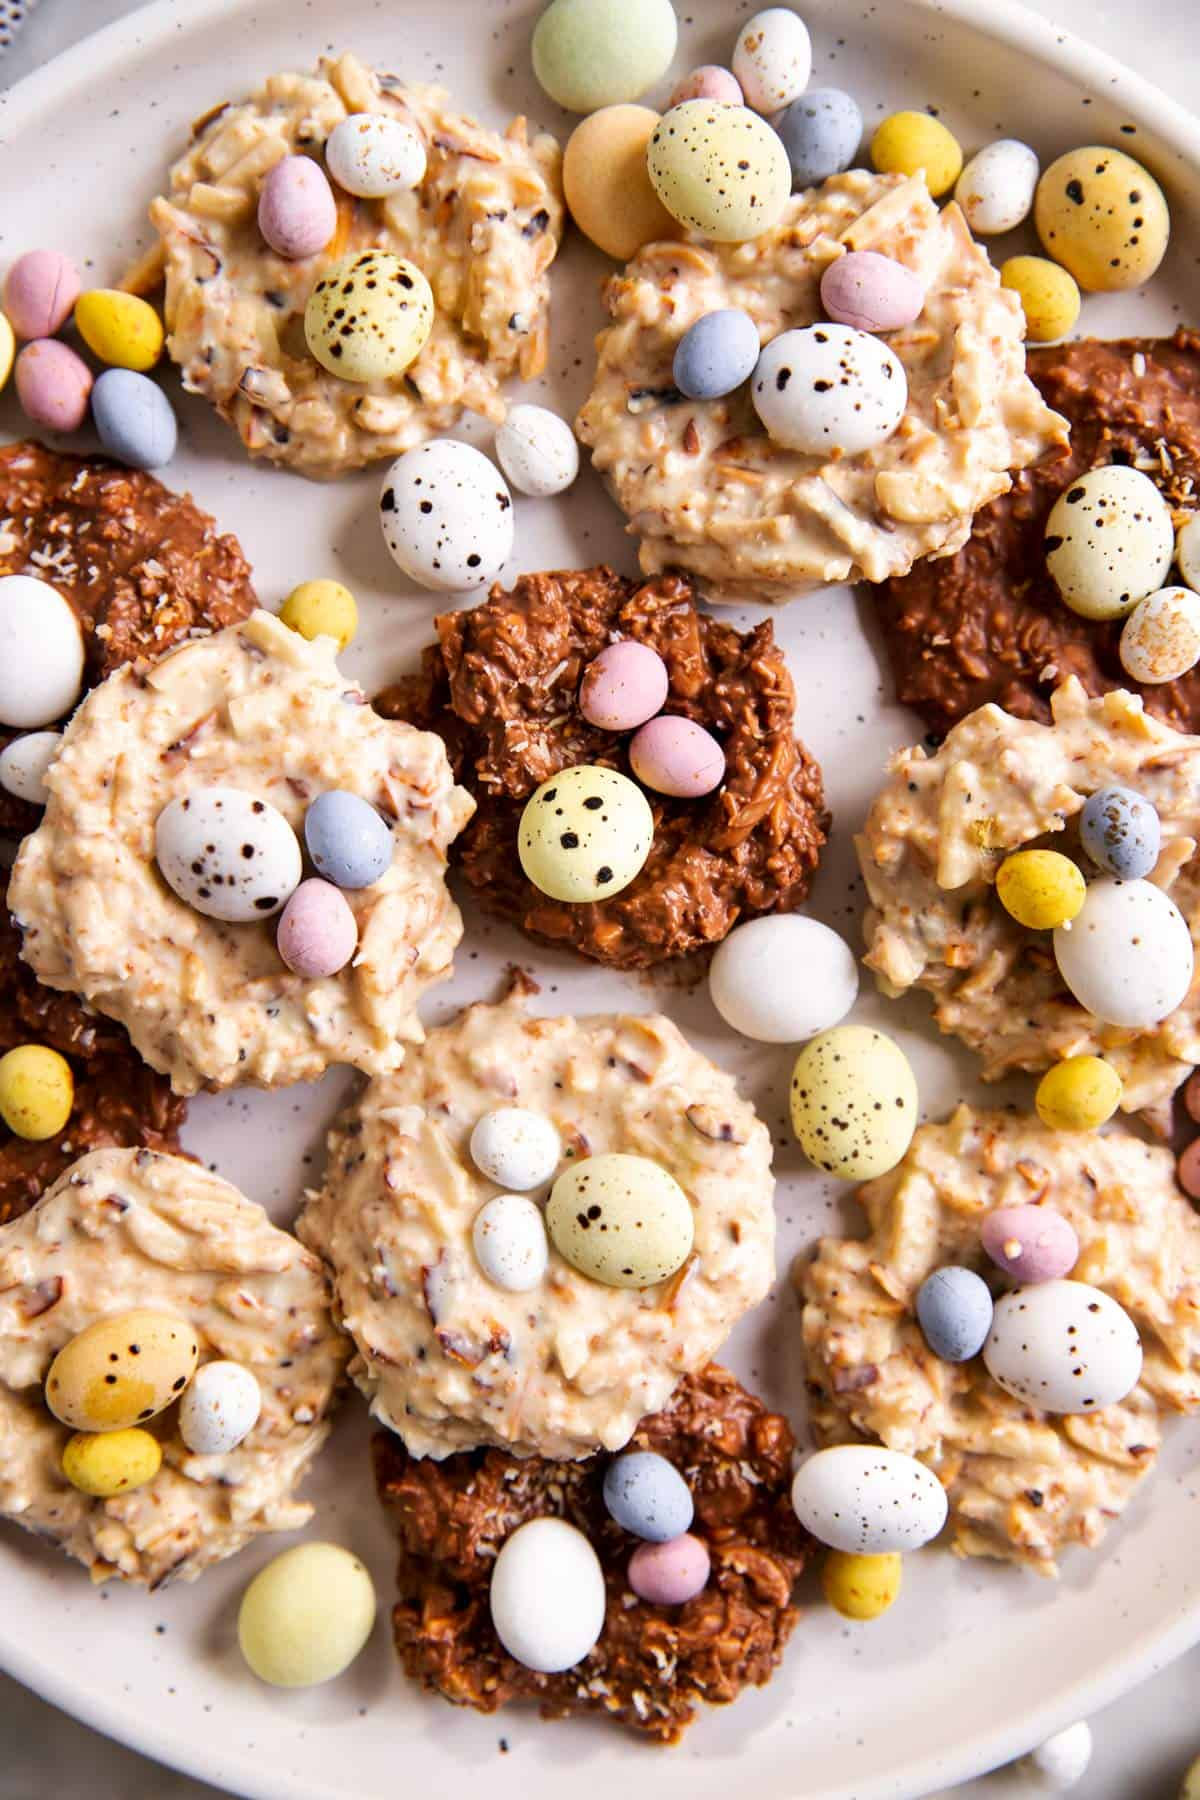 close up photo of several bird's nest cookies and scattered mini eggs on white plate